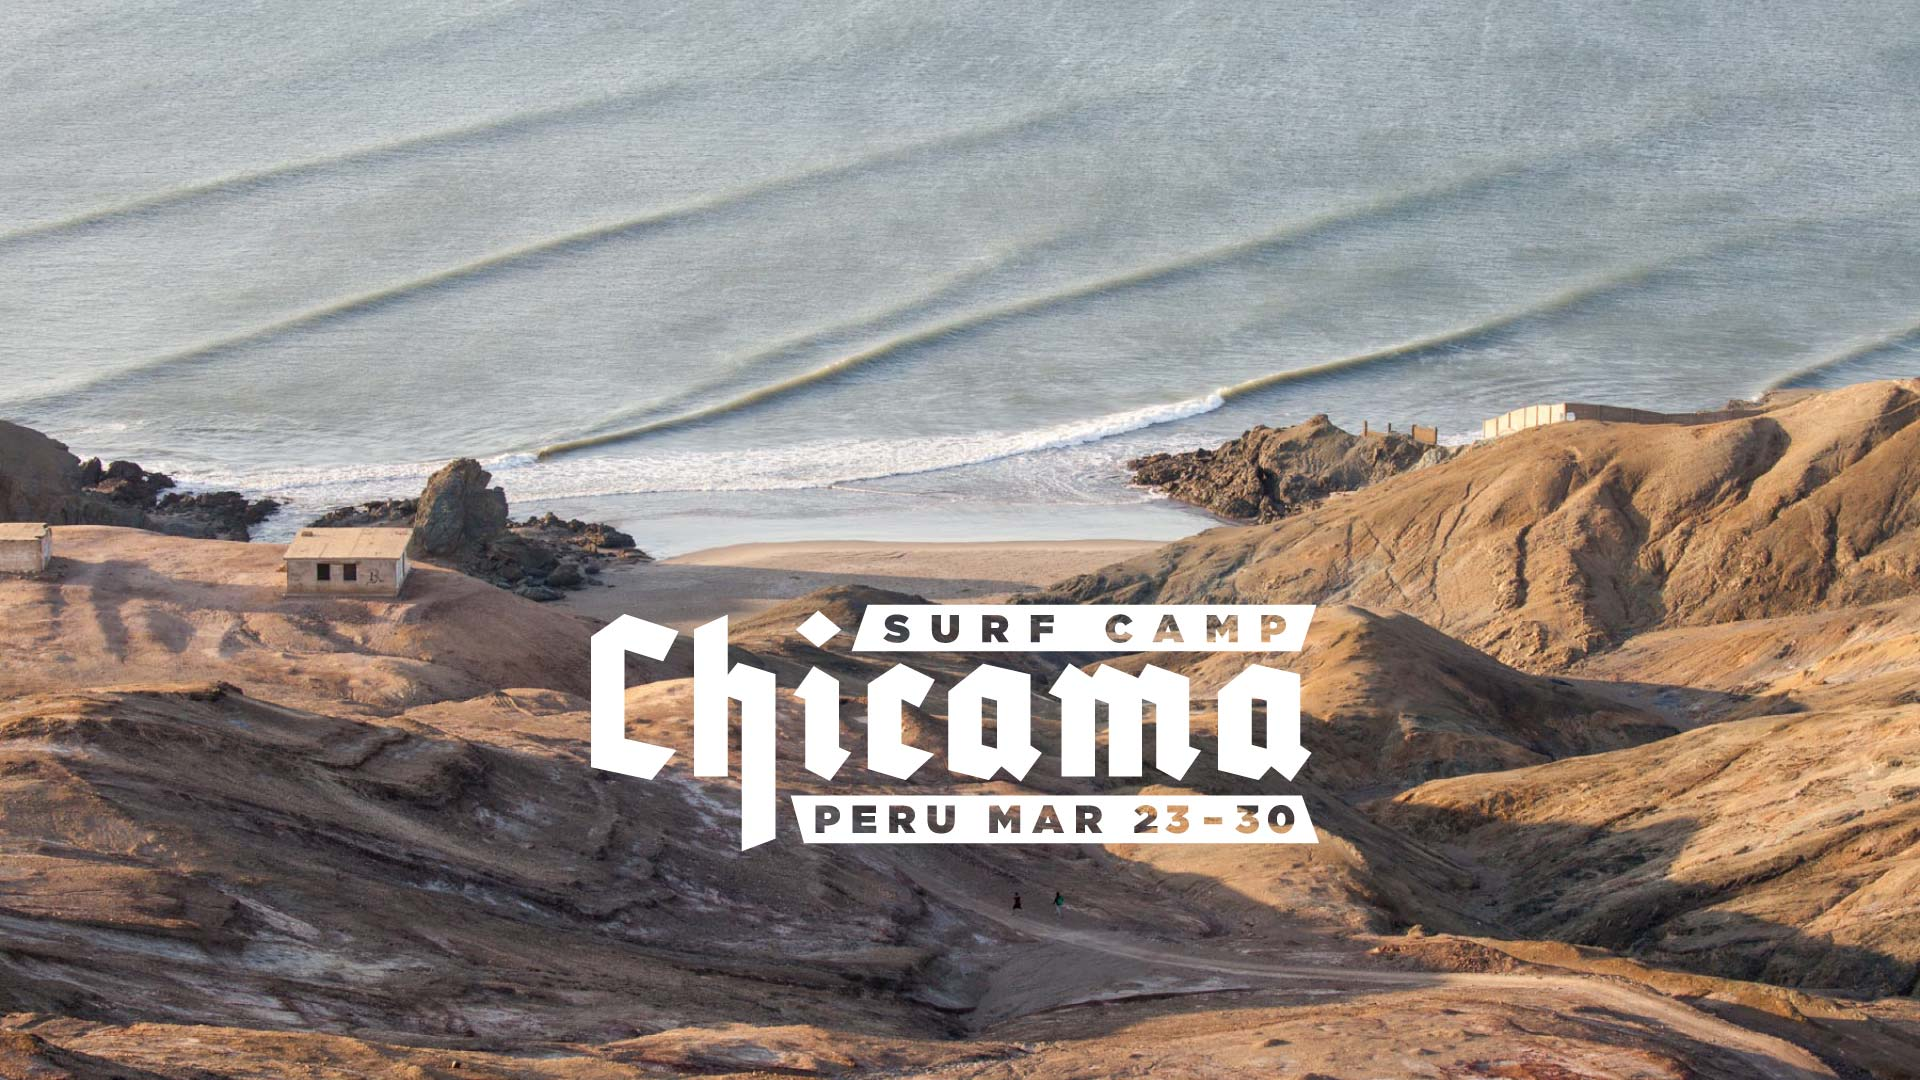 Surf the Greats Surf Camp Chicama Peru